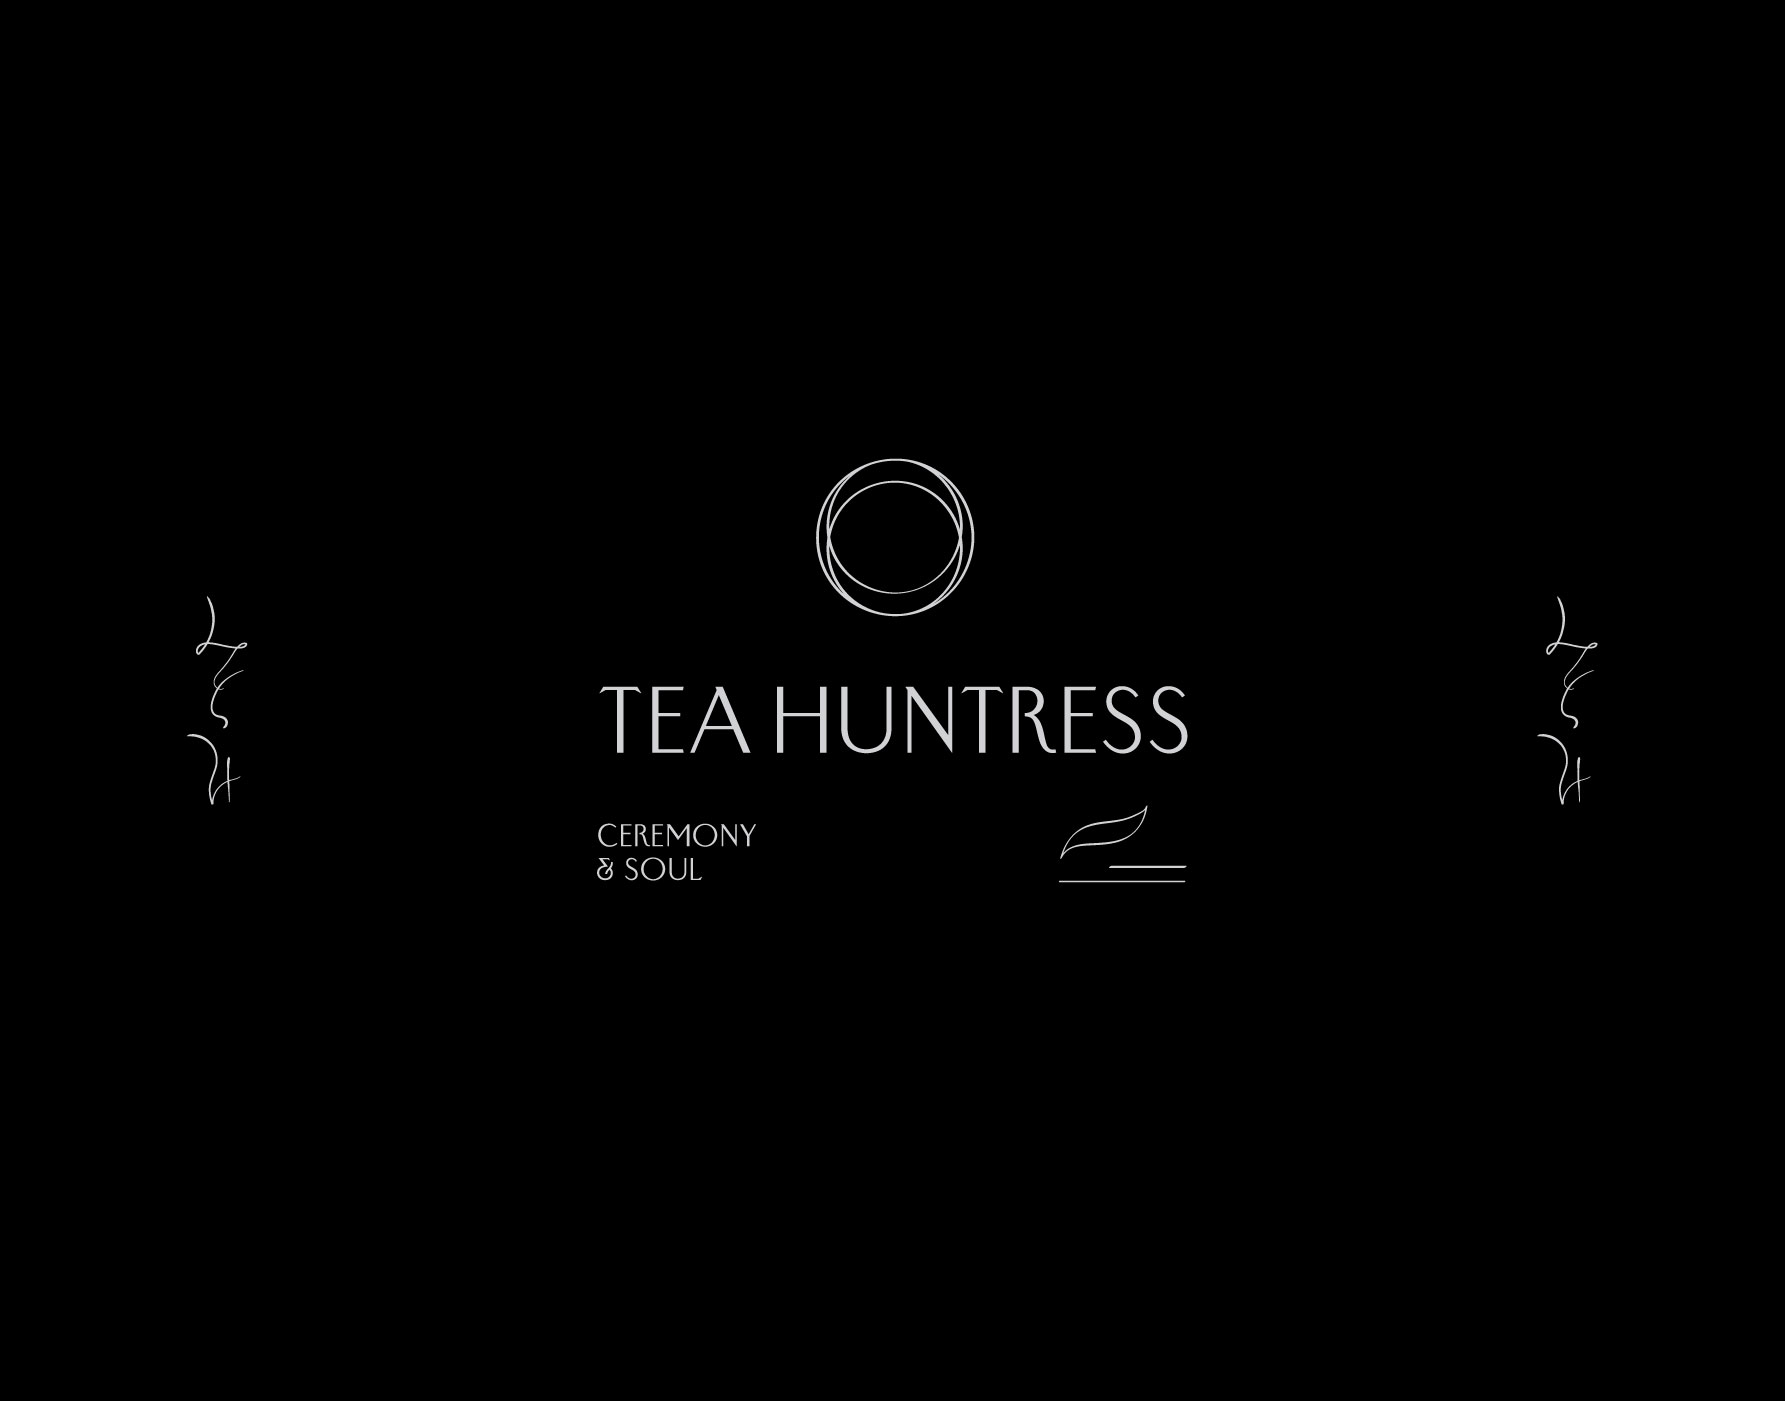 TEA-HUNTRESS.jpg